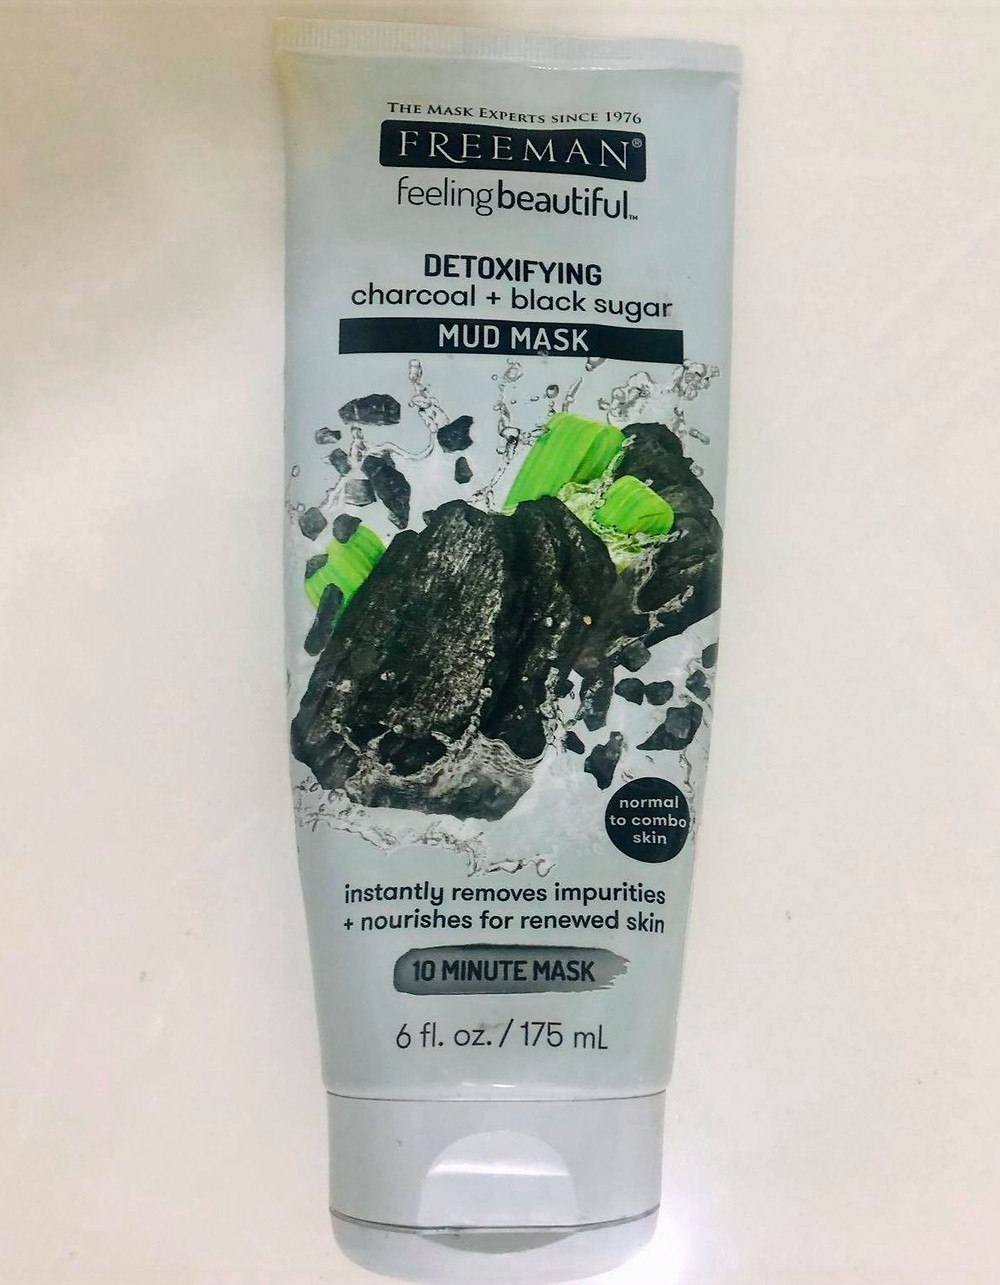 Freeman Detoxifying charcoal +Black sugar Mud mask